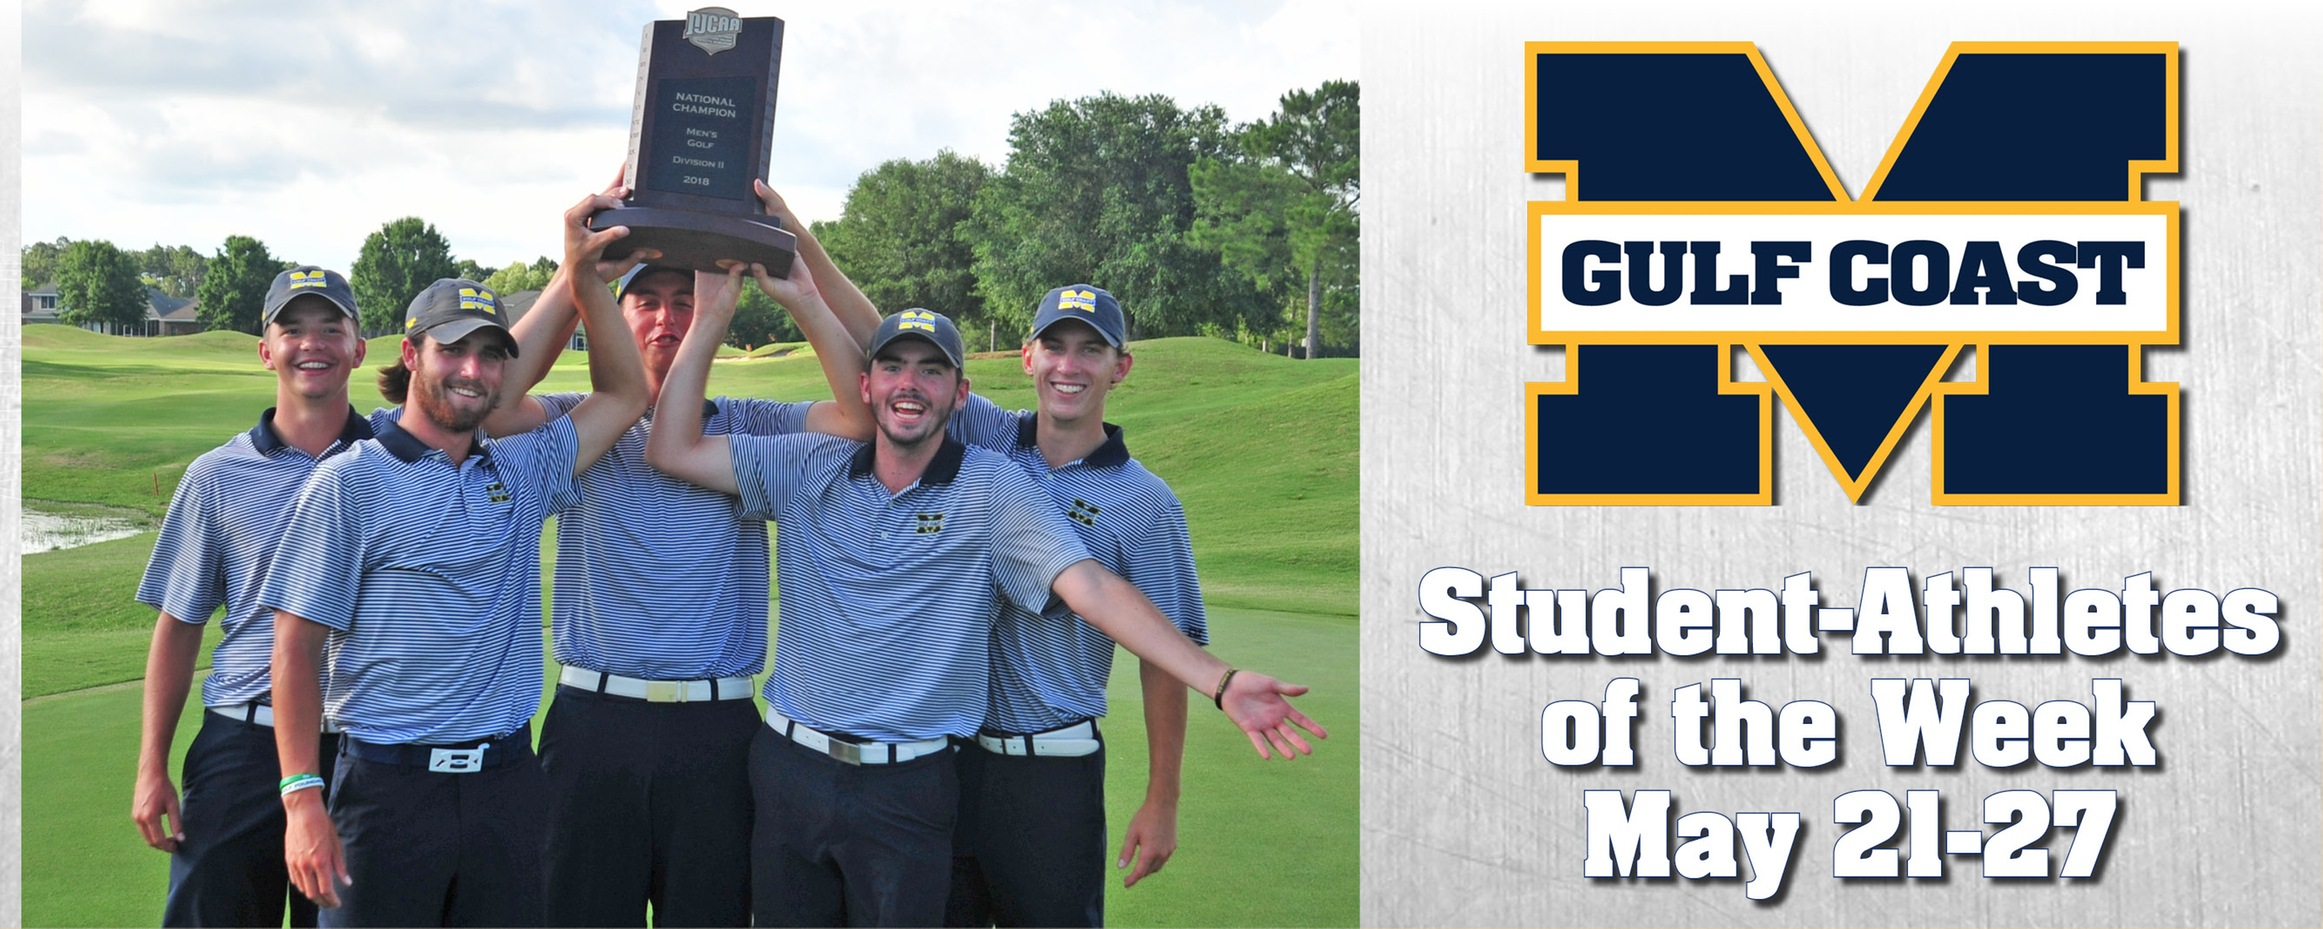 National champs named MGCCC Student-Athletes of the Week